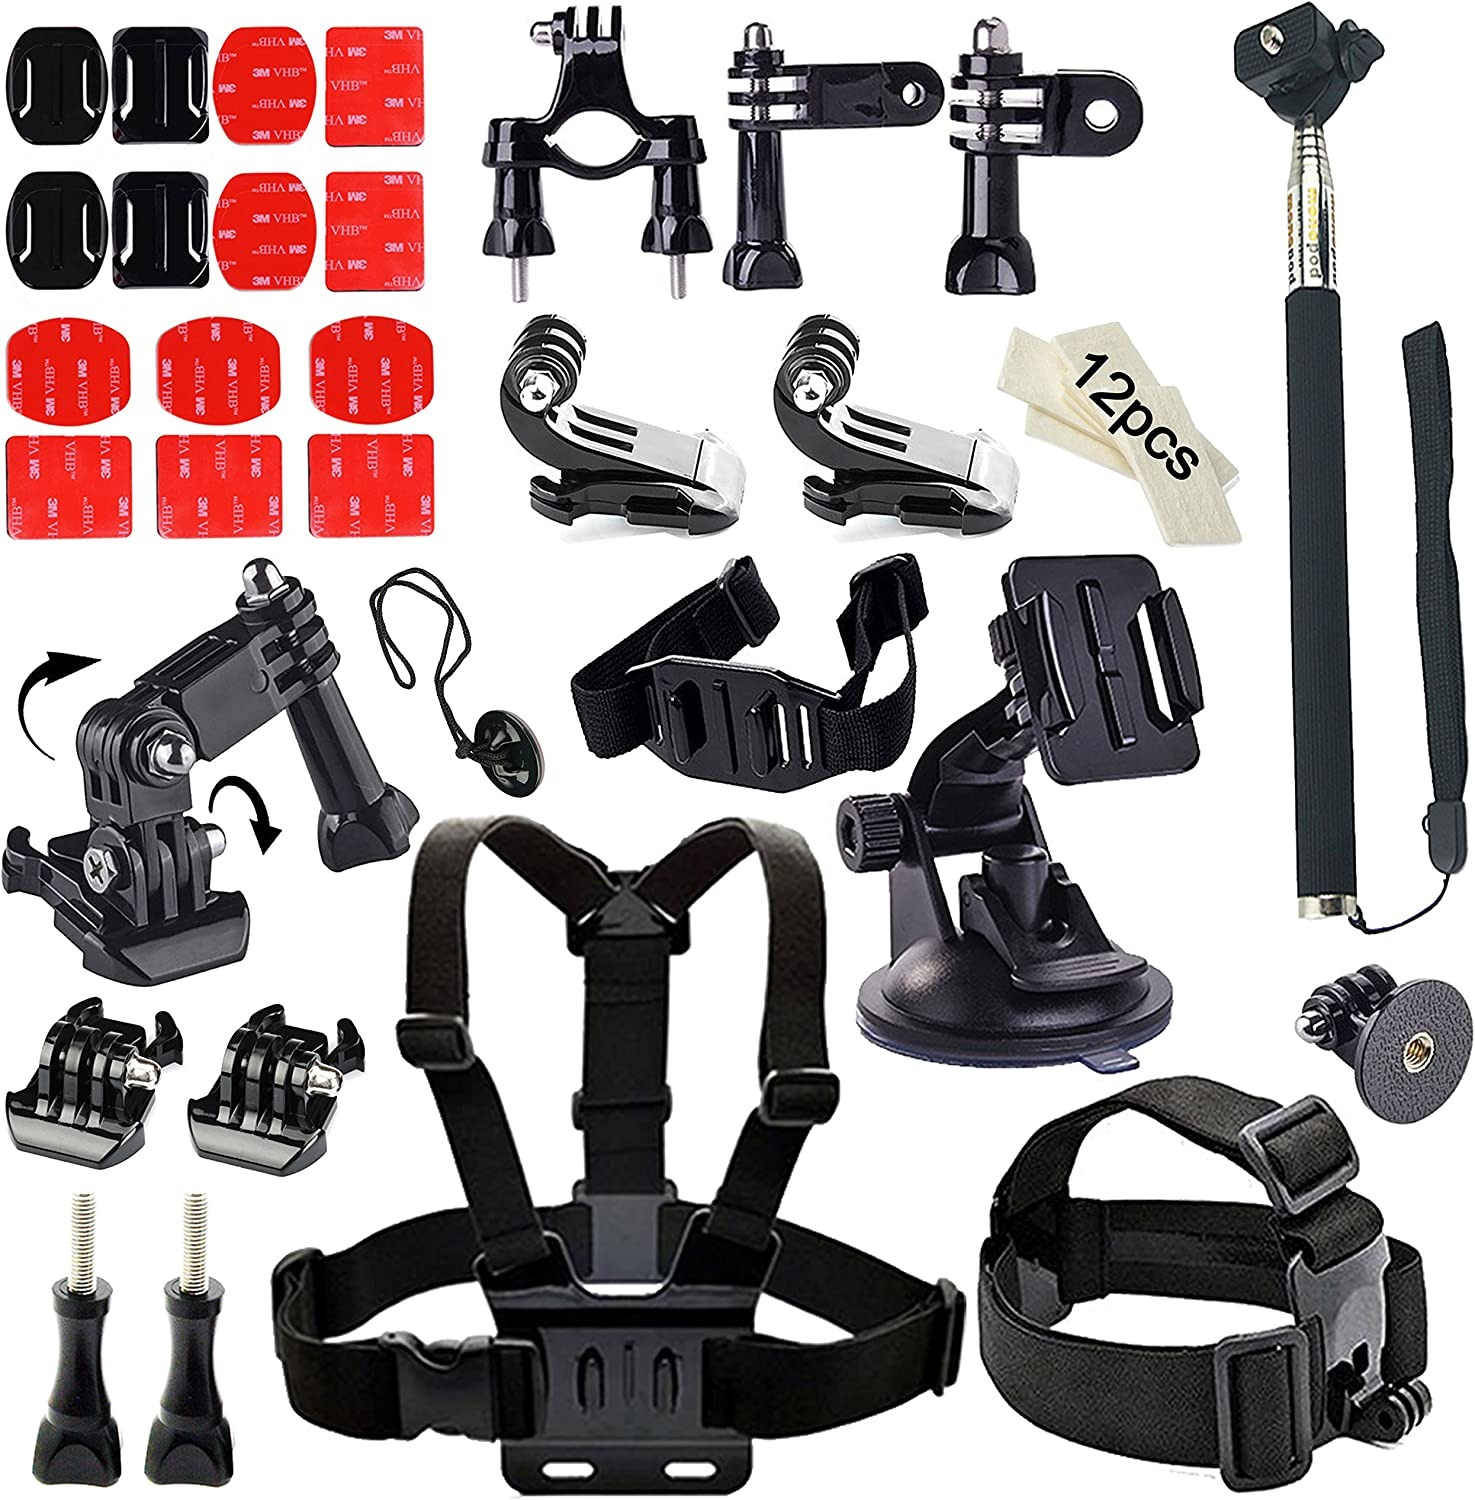 Soft Digits Accessories Bundle Kit for GoPro Hero 5/4/3/2/1 Action Camera Accessory Set for Ourdoor Sports in Swimming Diving Rowing Climbing Bike Riding(44 Items)